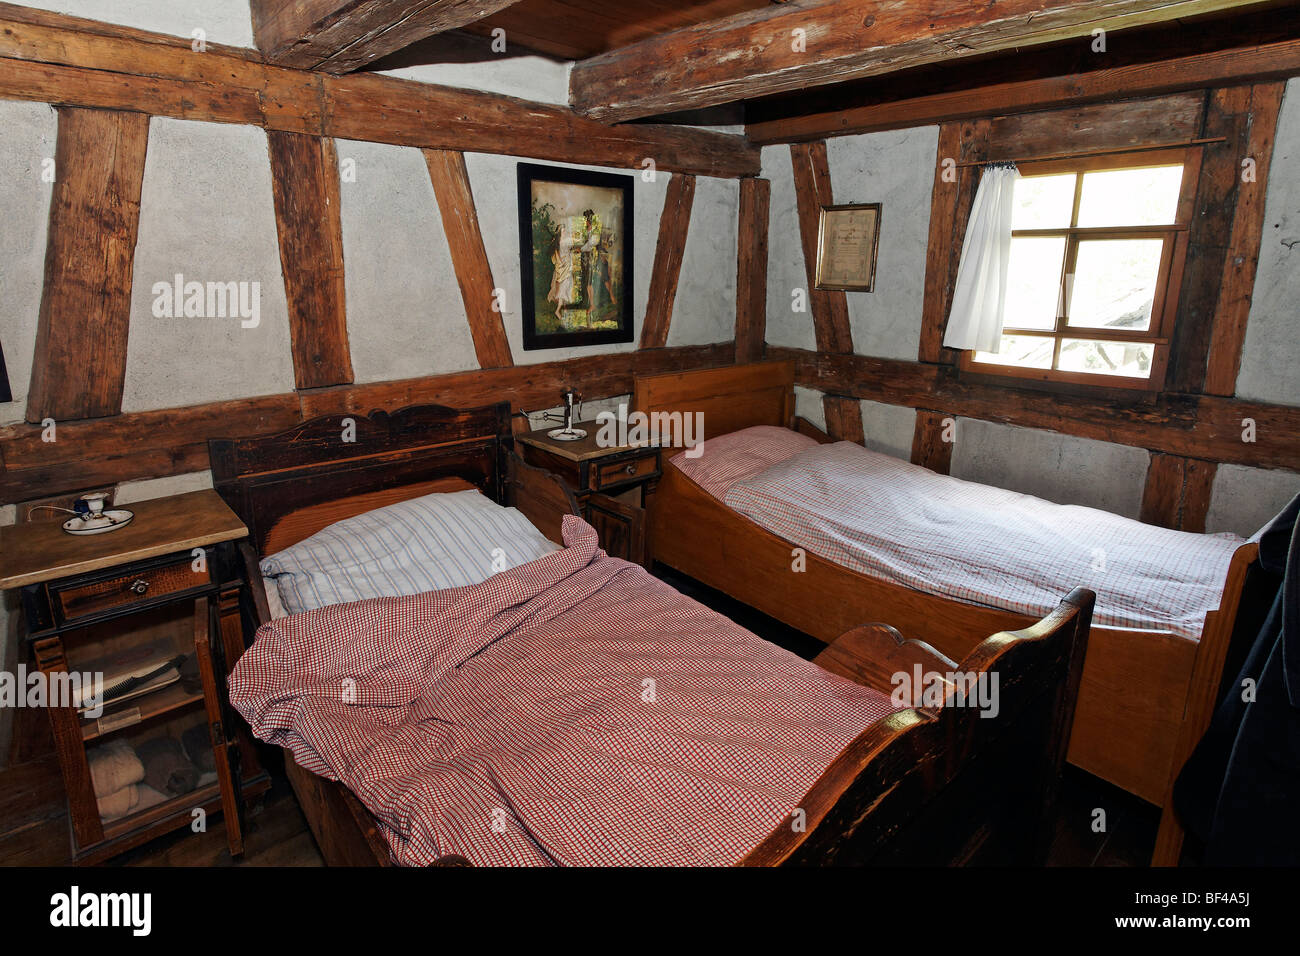 Beds in the servants' bedroom, historic bakery from 1730, Wolfegg Farmhouse Museum, Allgaeu, Upper Swabia, Baden - Stock Image